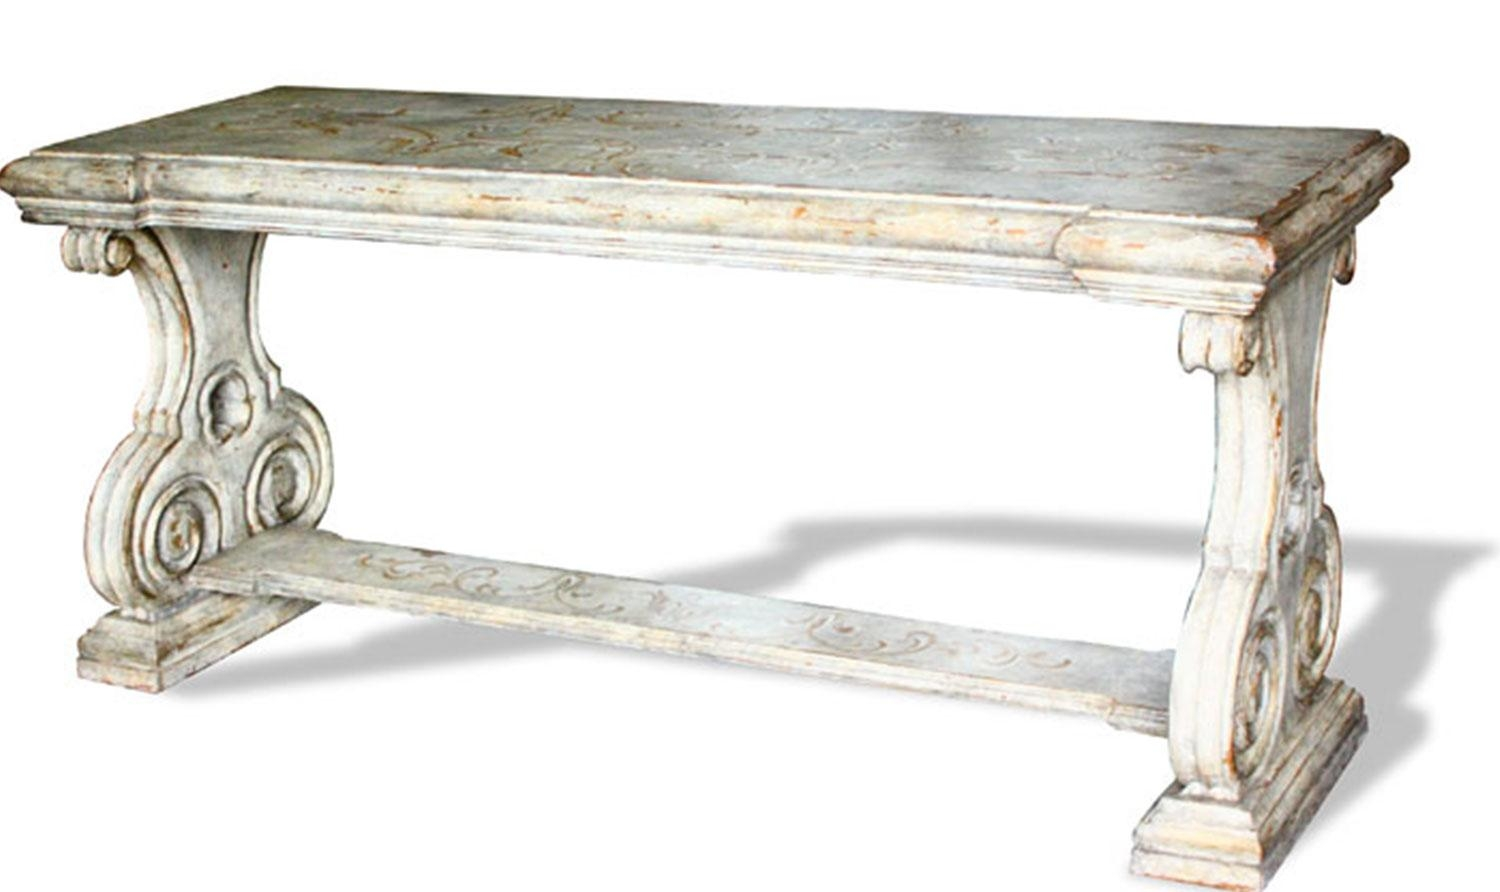 French Country Sofa Table Romana | The Koenig Collection – Unique Regarding Country Sofa Tables (Image 14 of 20)